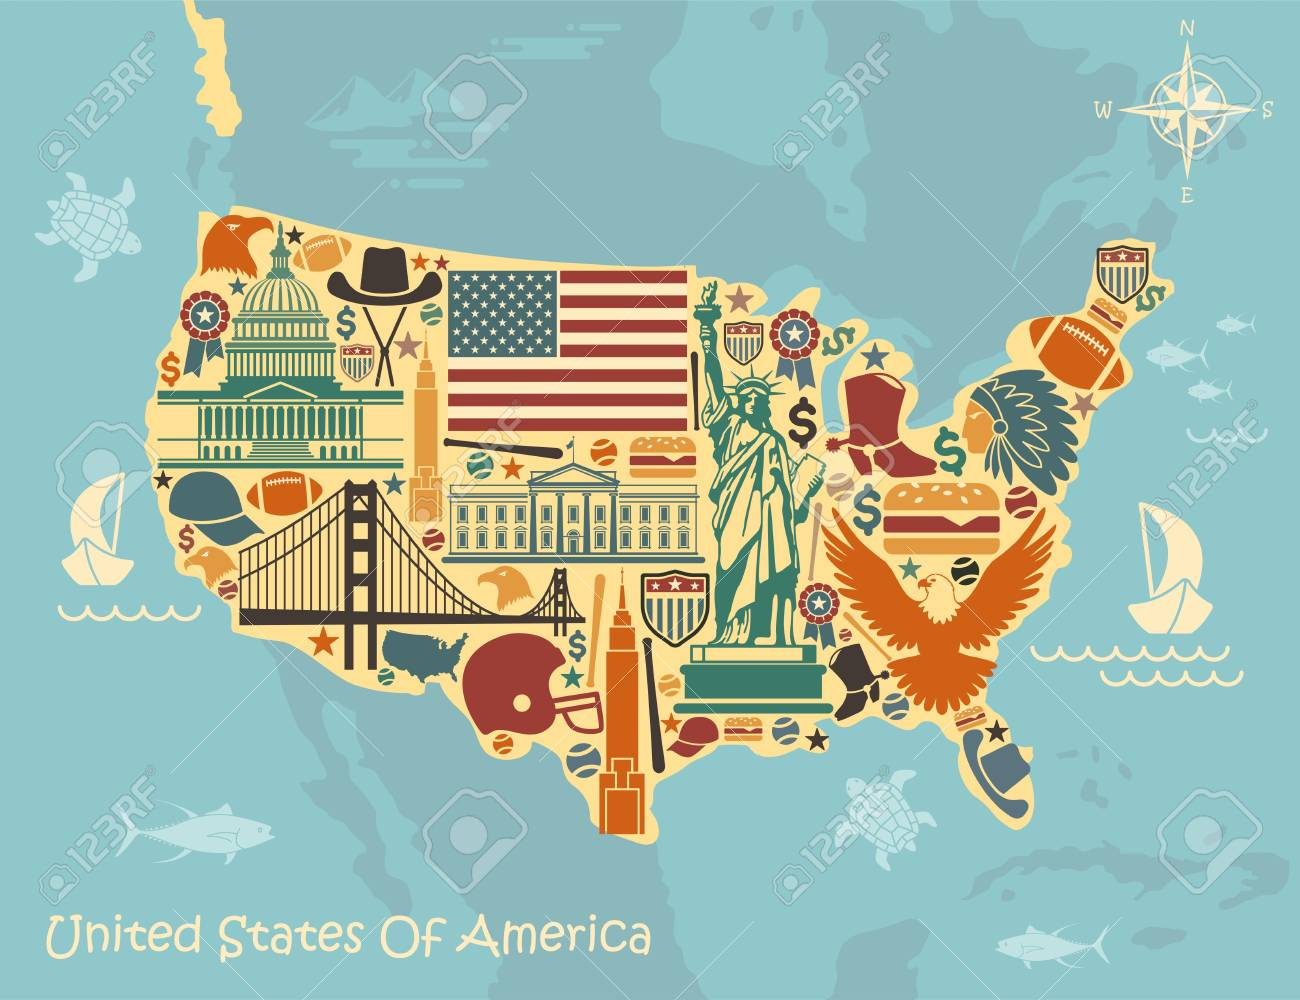 Image Map Of The United States.Stylized Map Of The United States With American Symbols